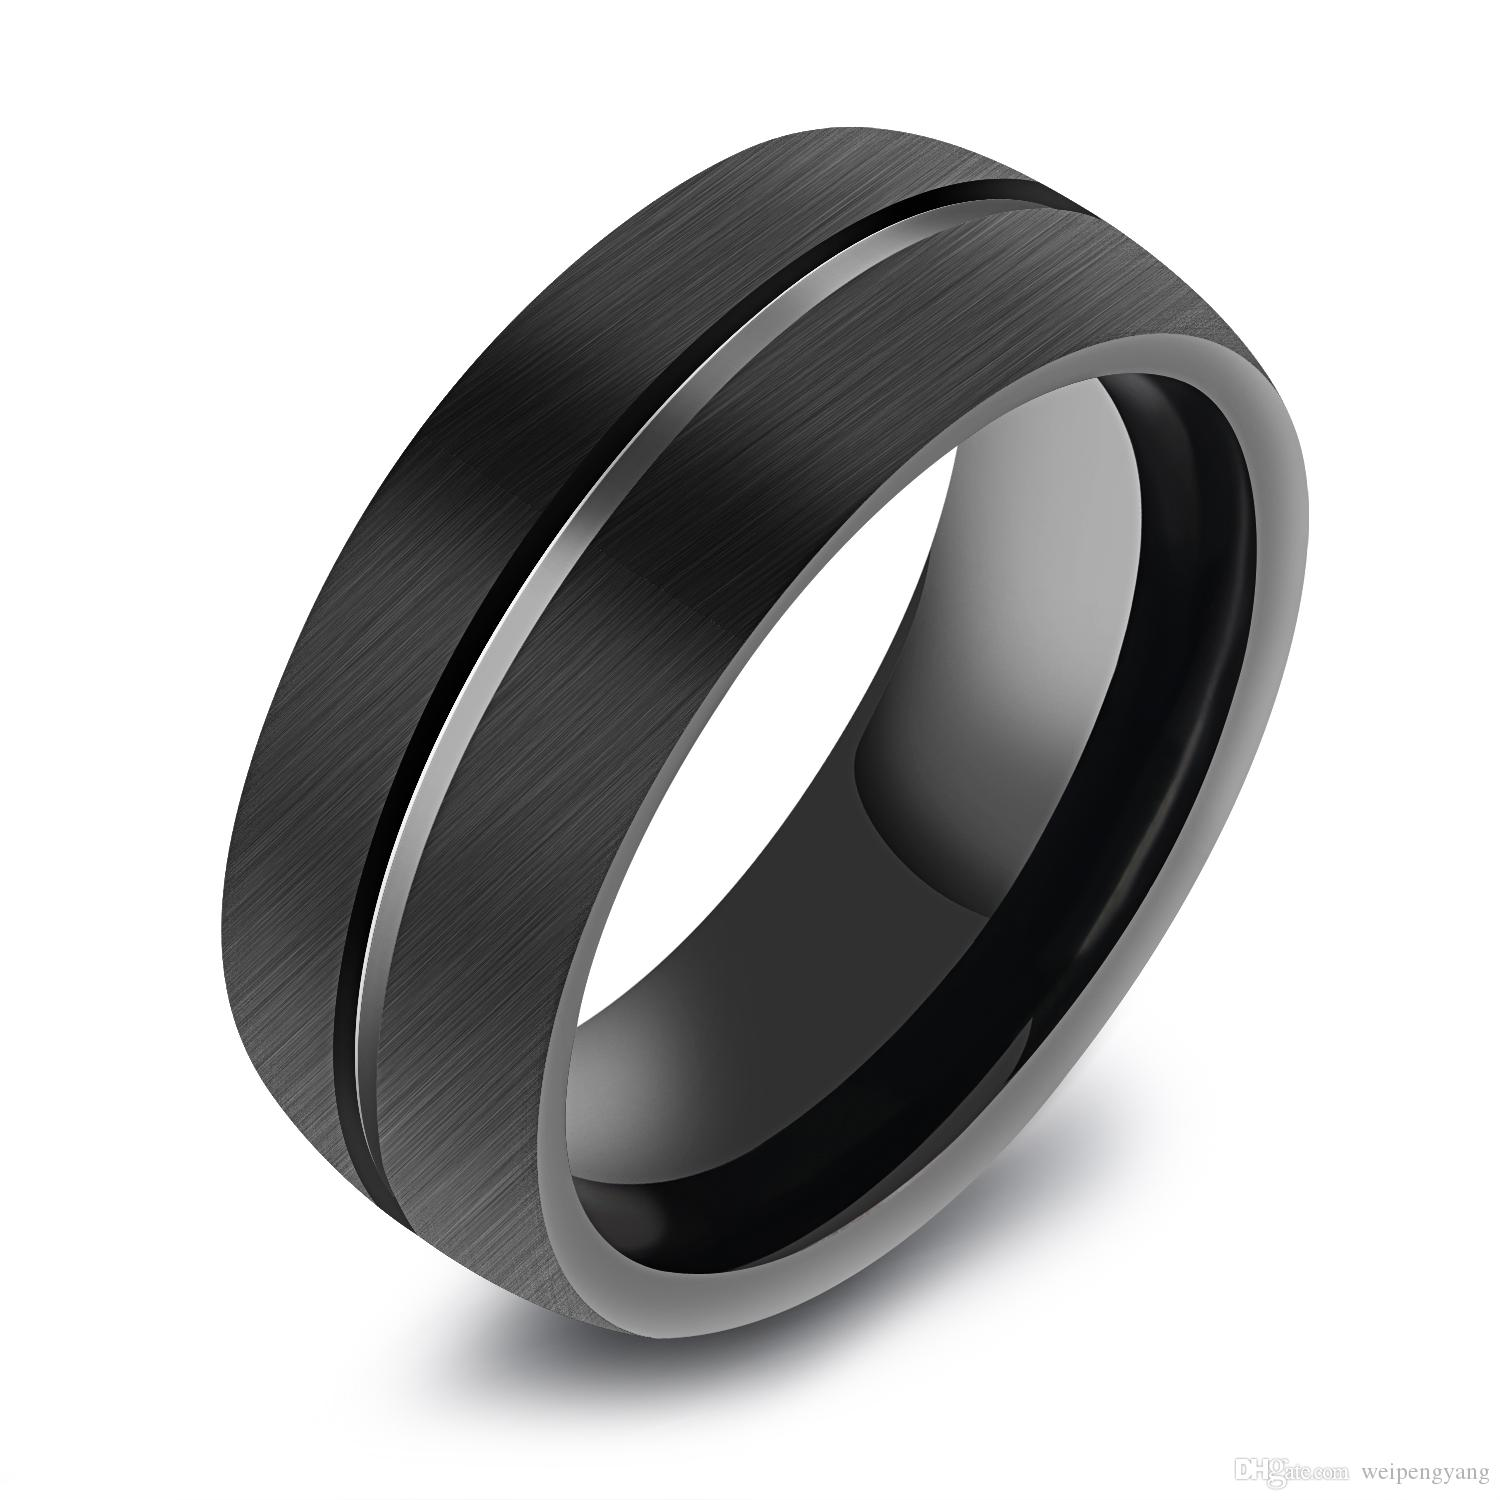 rings plated rose and for edge tungsten wedding bands com beveled inlay band carbon black gold amazon fiber dp mnh men